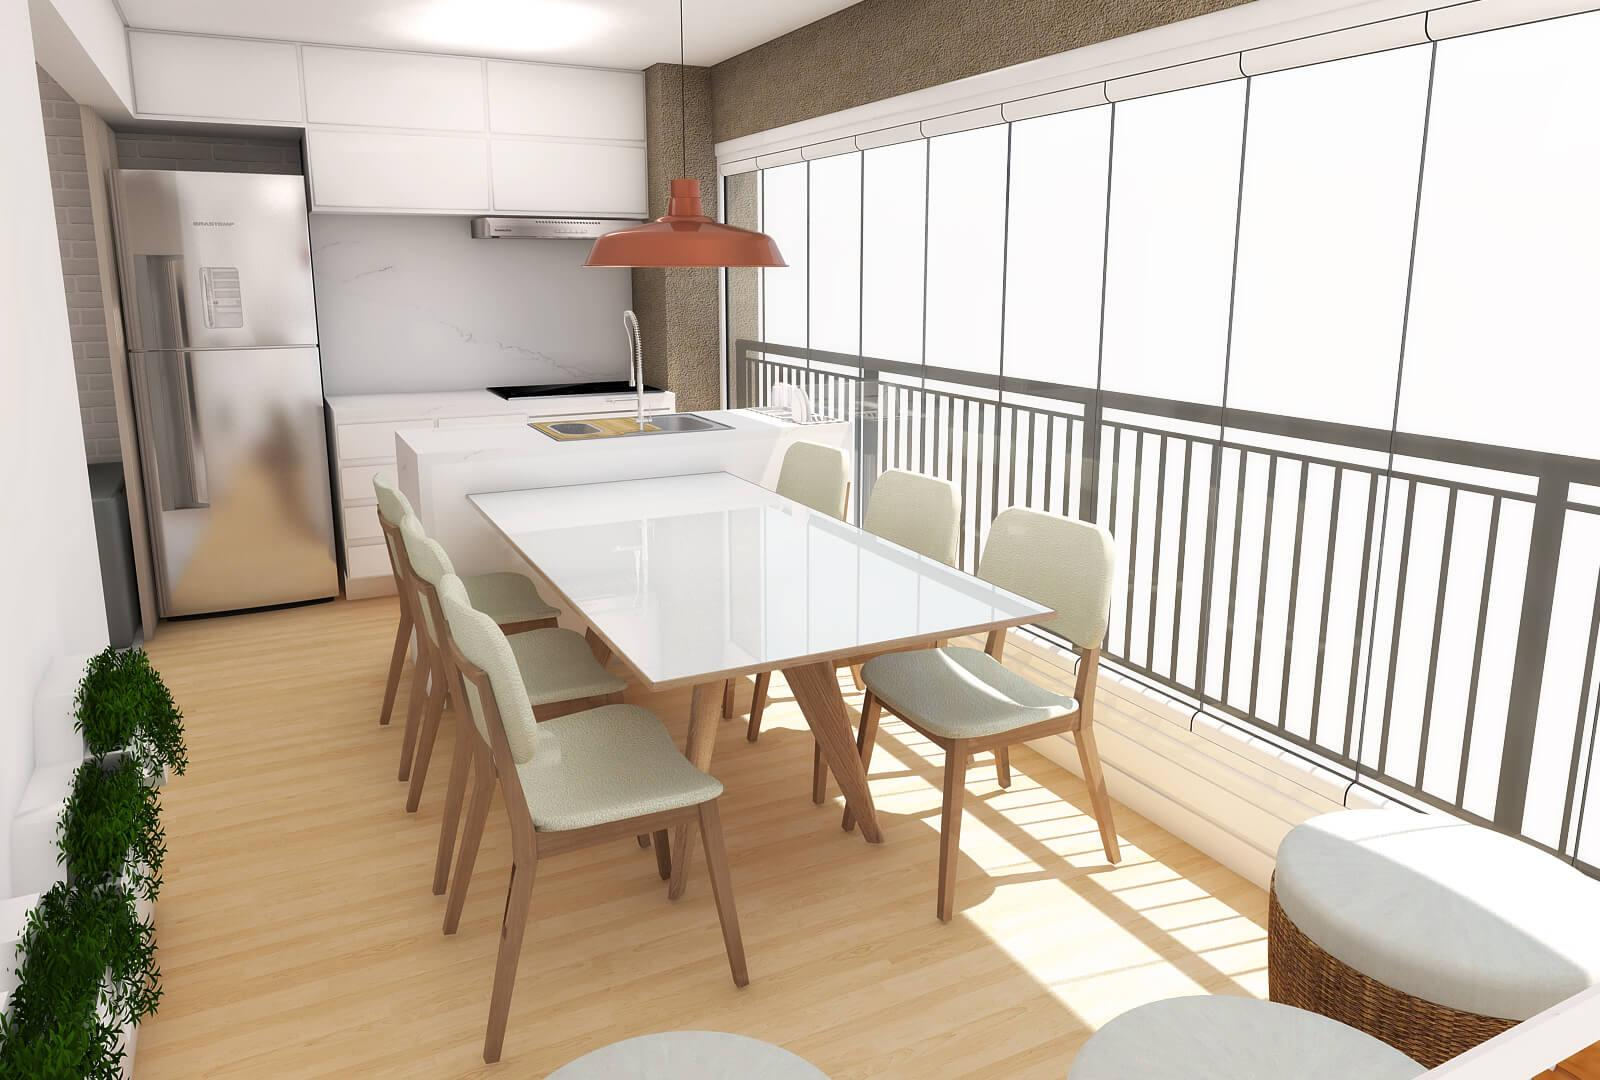 3D design of the T&V balcony and kitchen